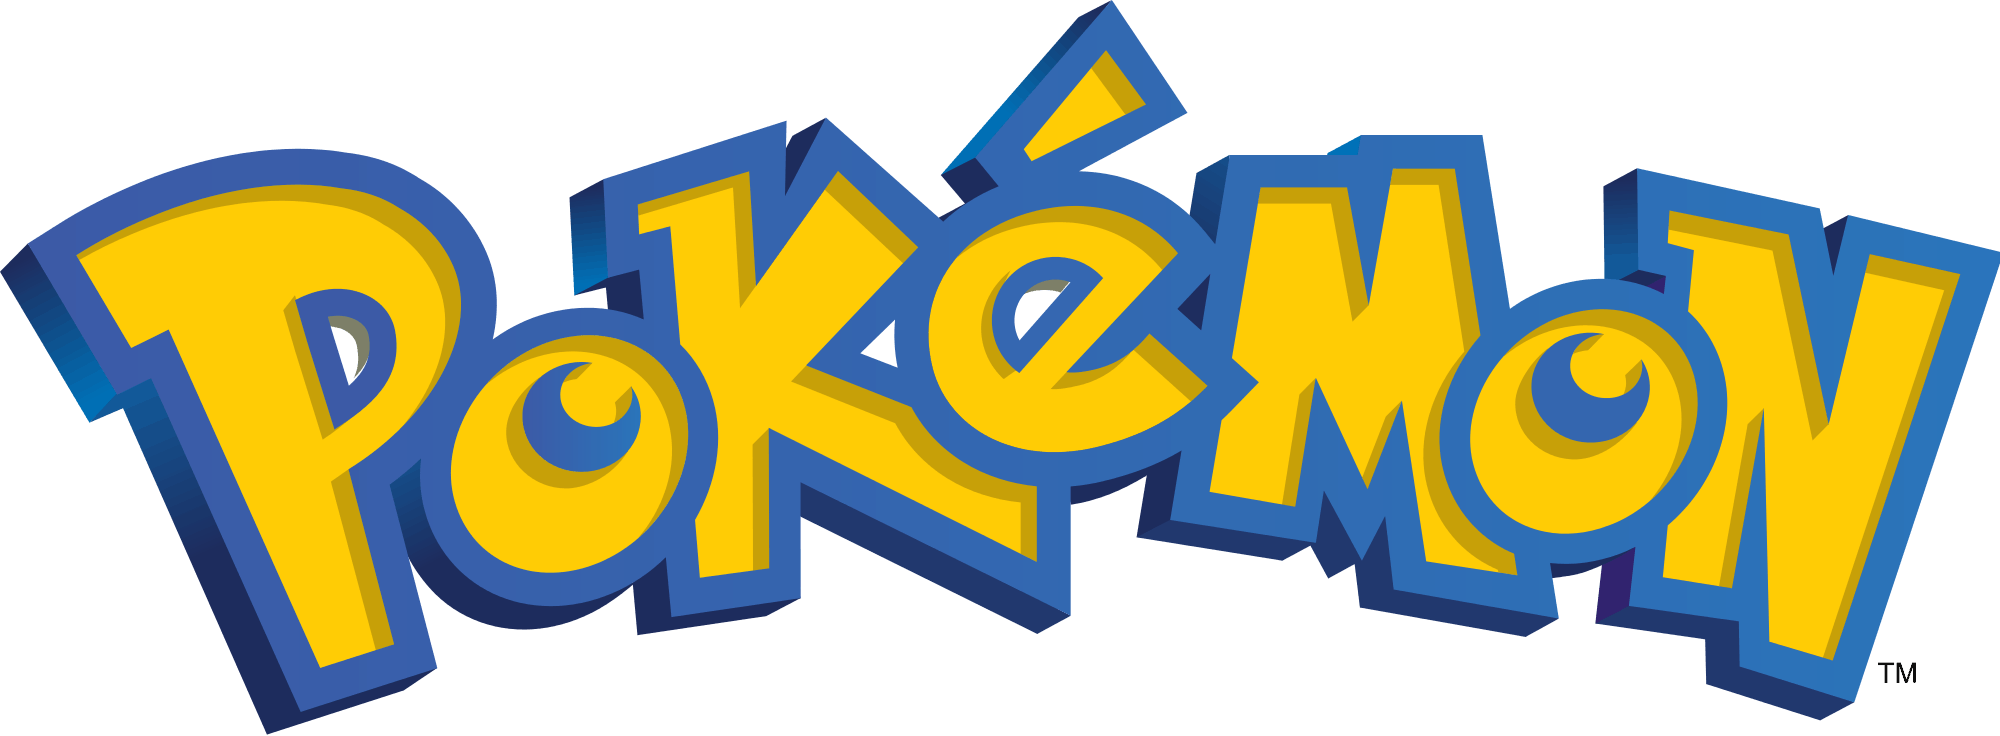 Pokemon title png. Nintendo switch to be